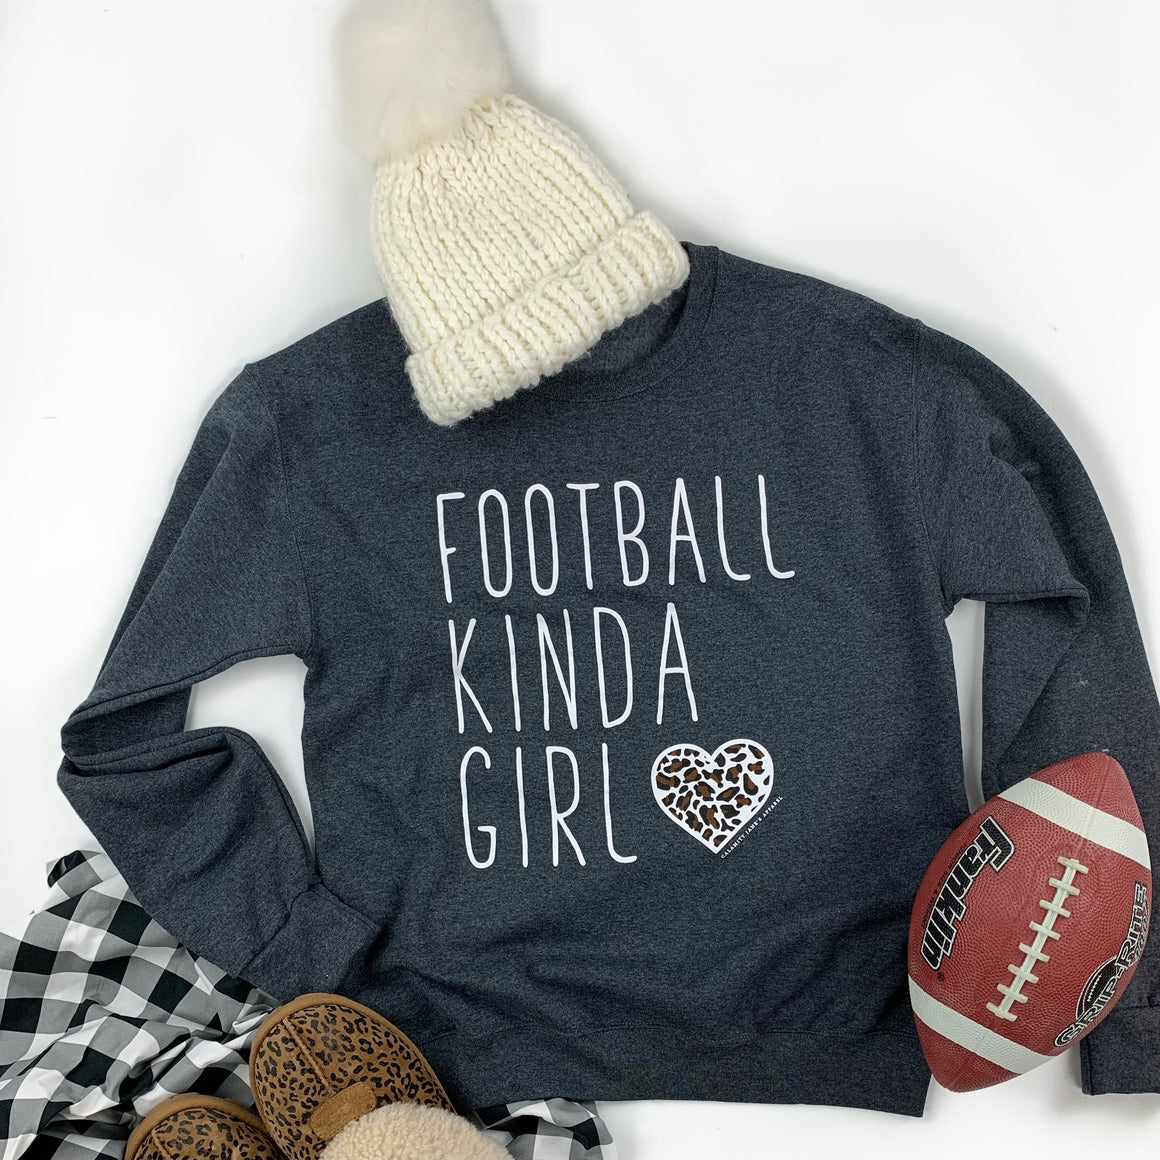 SPORTS LIFE: Football Kinda Girl - Sweatshirt